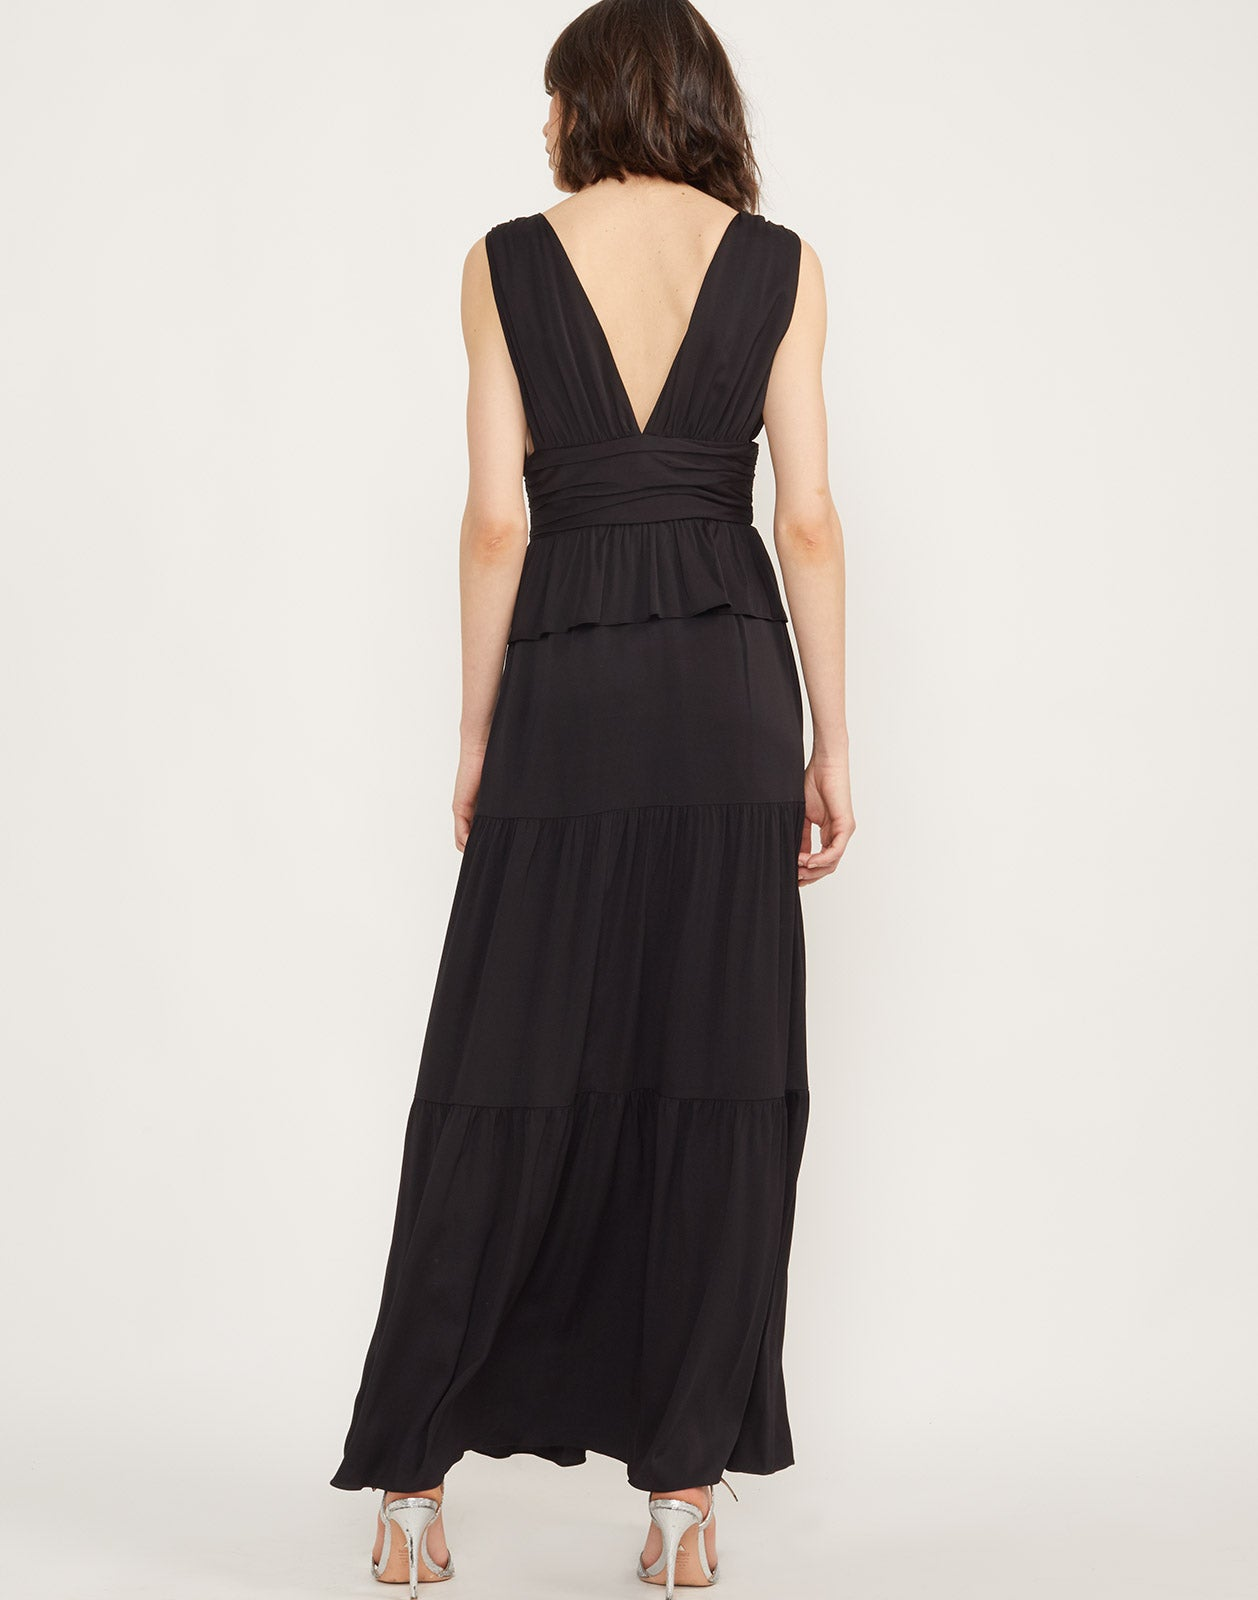 Full back view of model wearing Zadie tiered maxi dress in black.